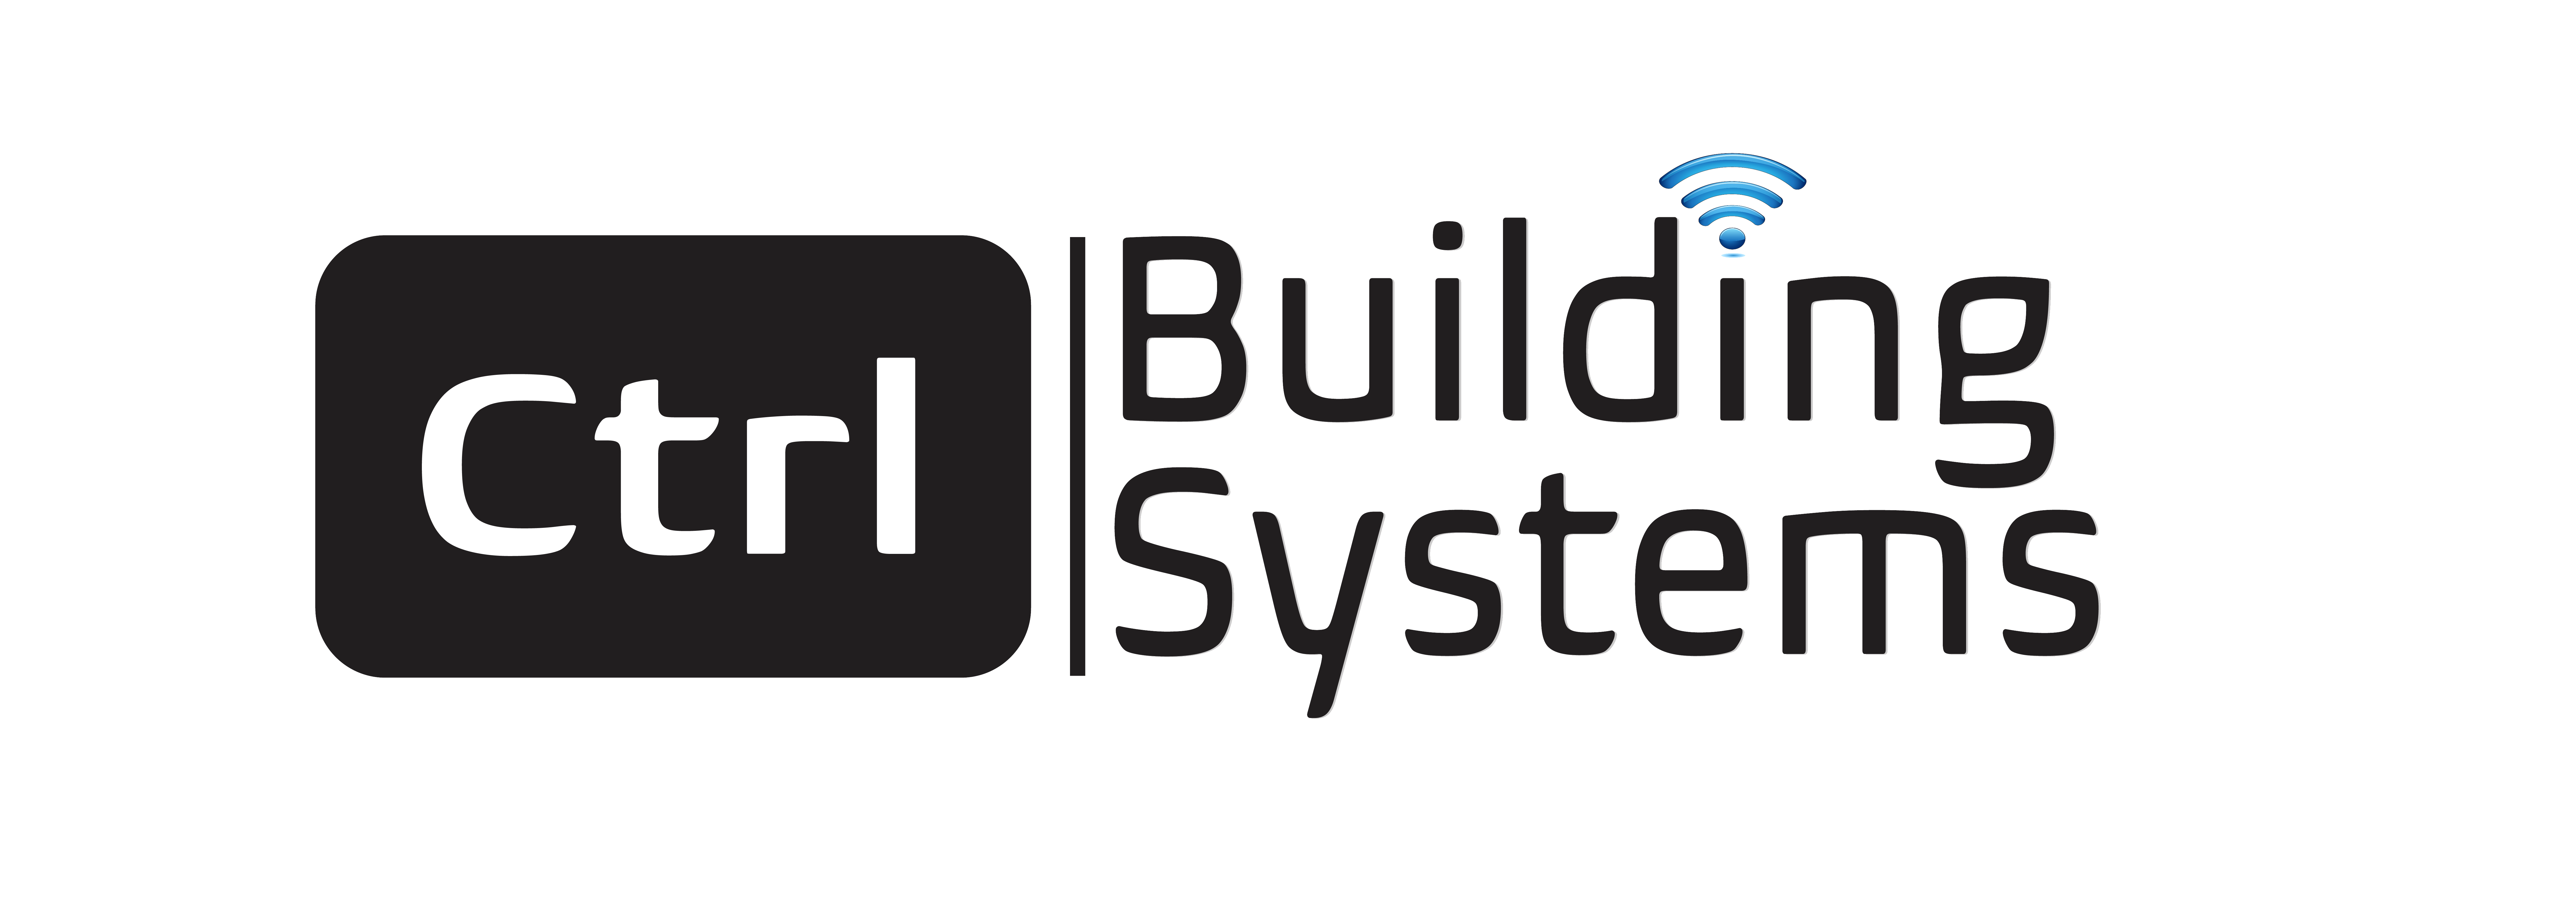 CTRL Building Systems logo